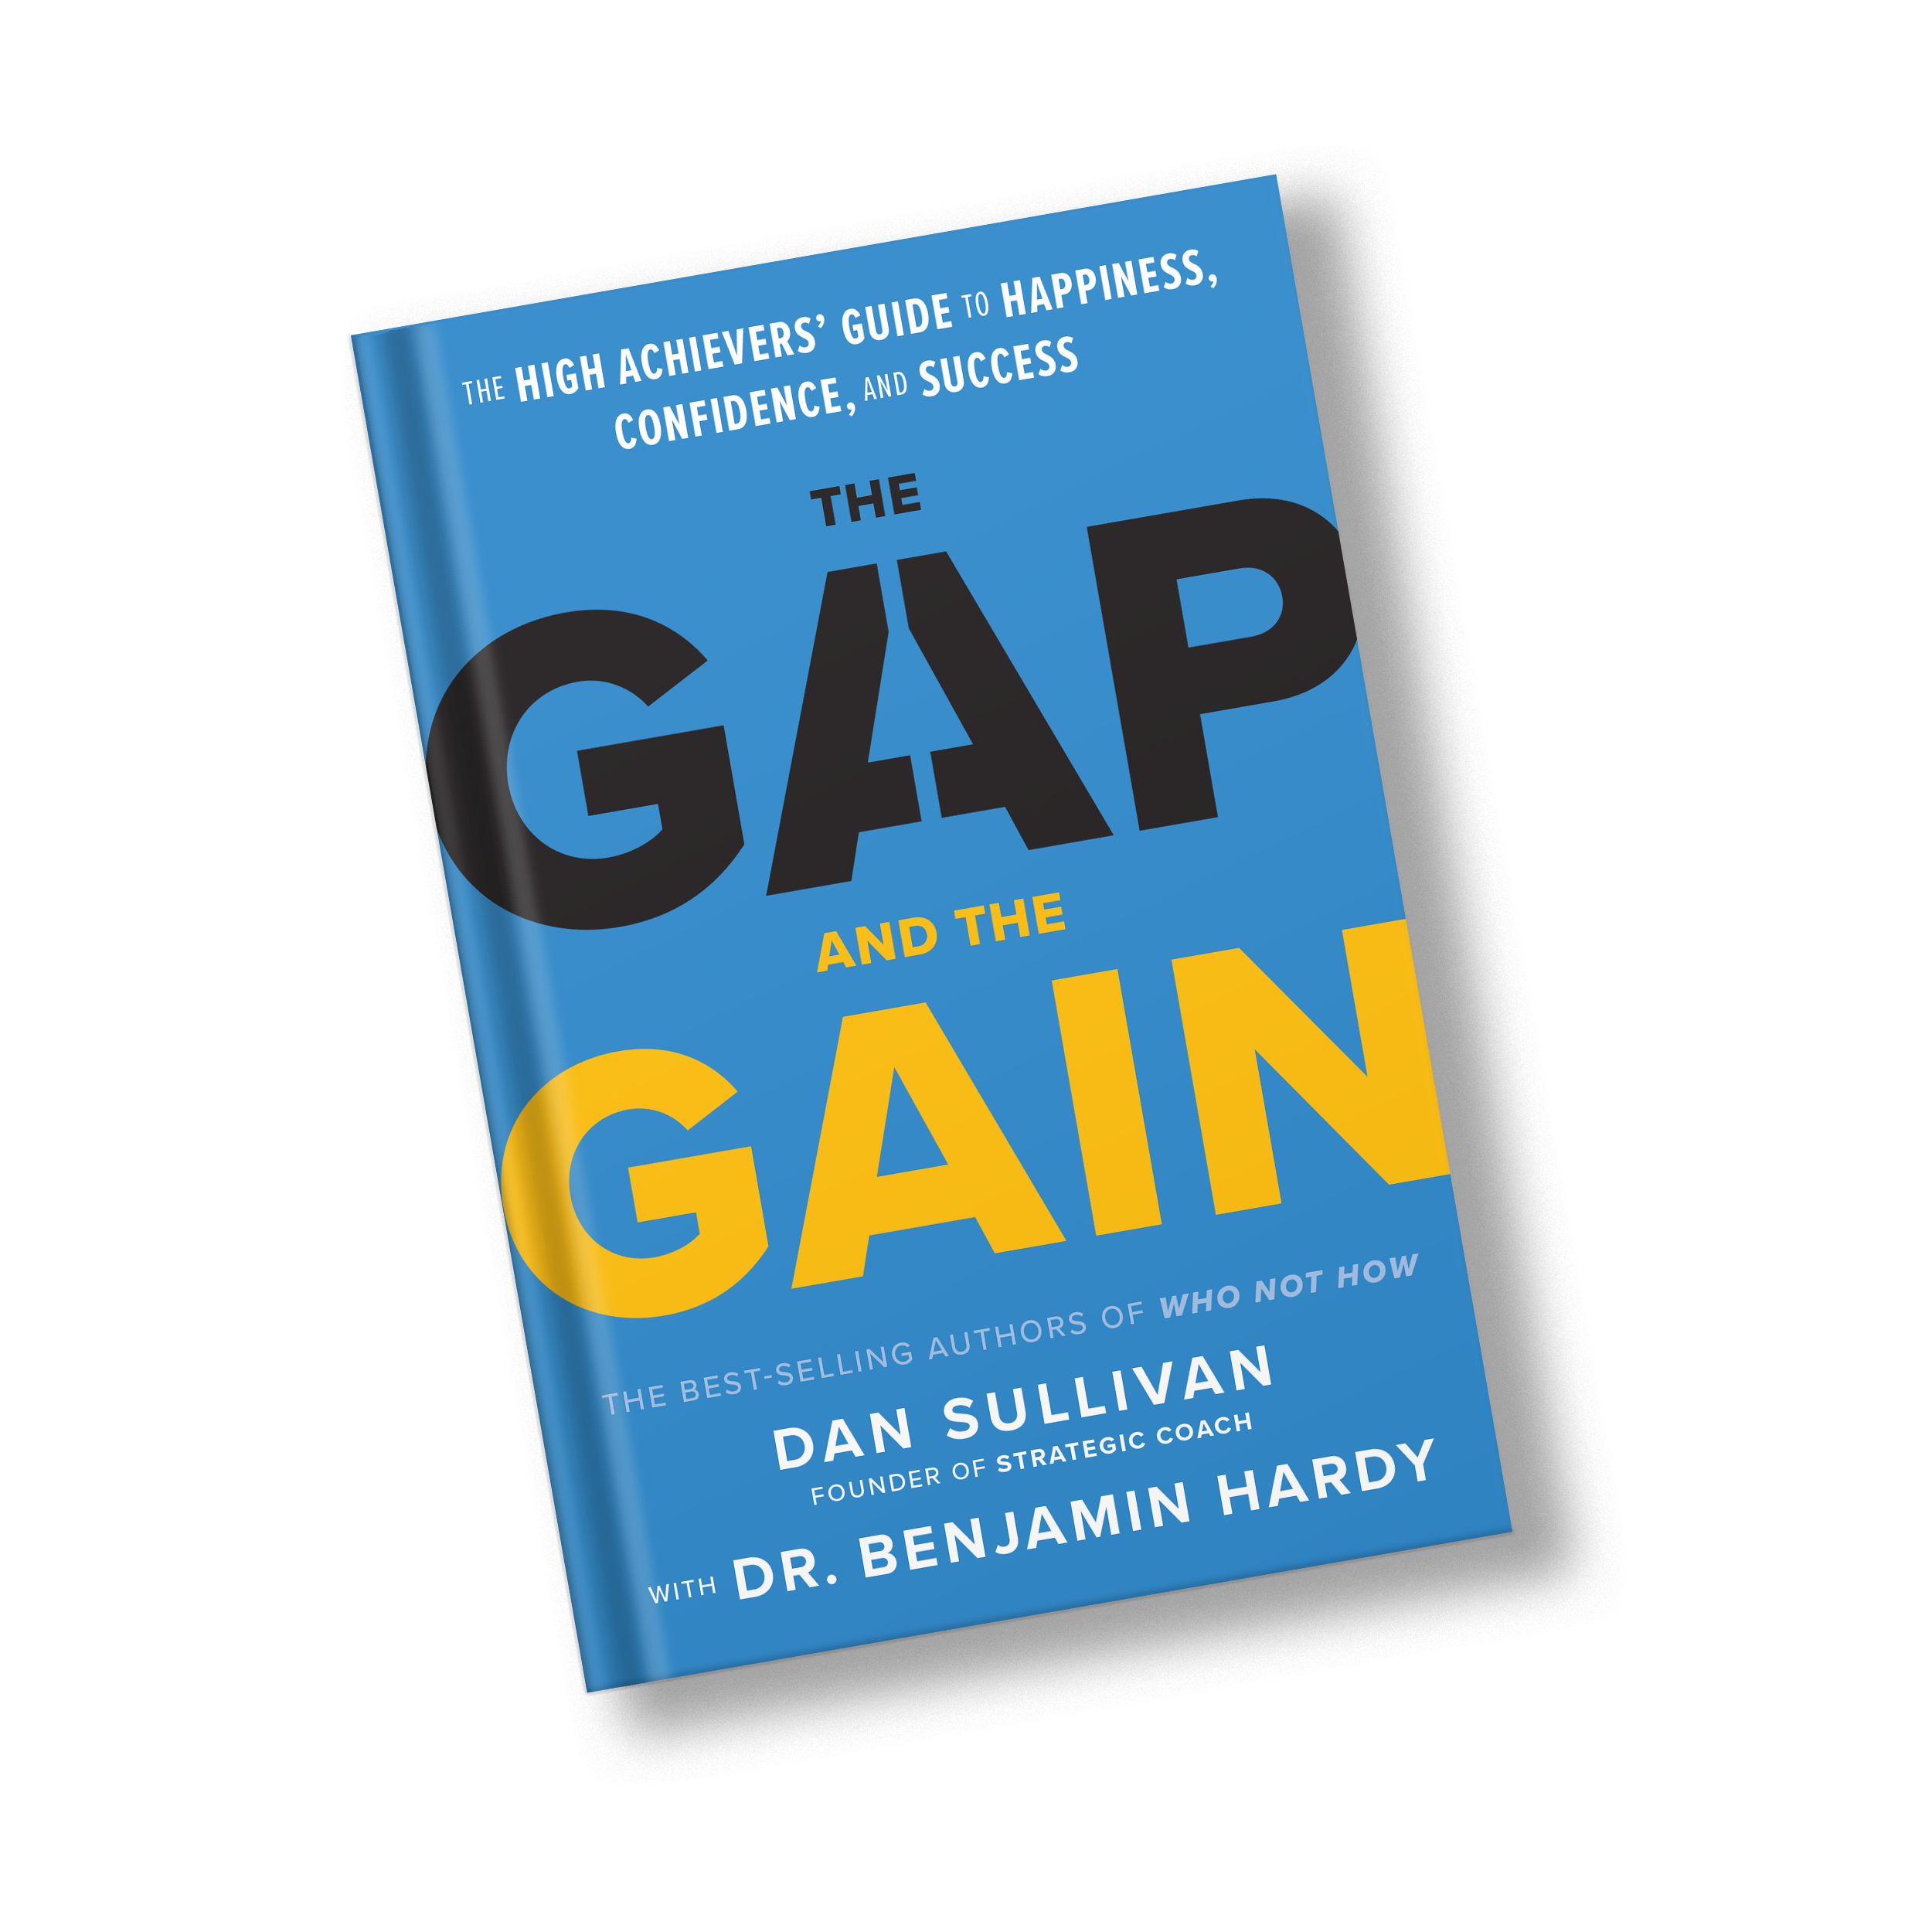 The Gap And The Gain Book